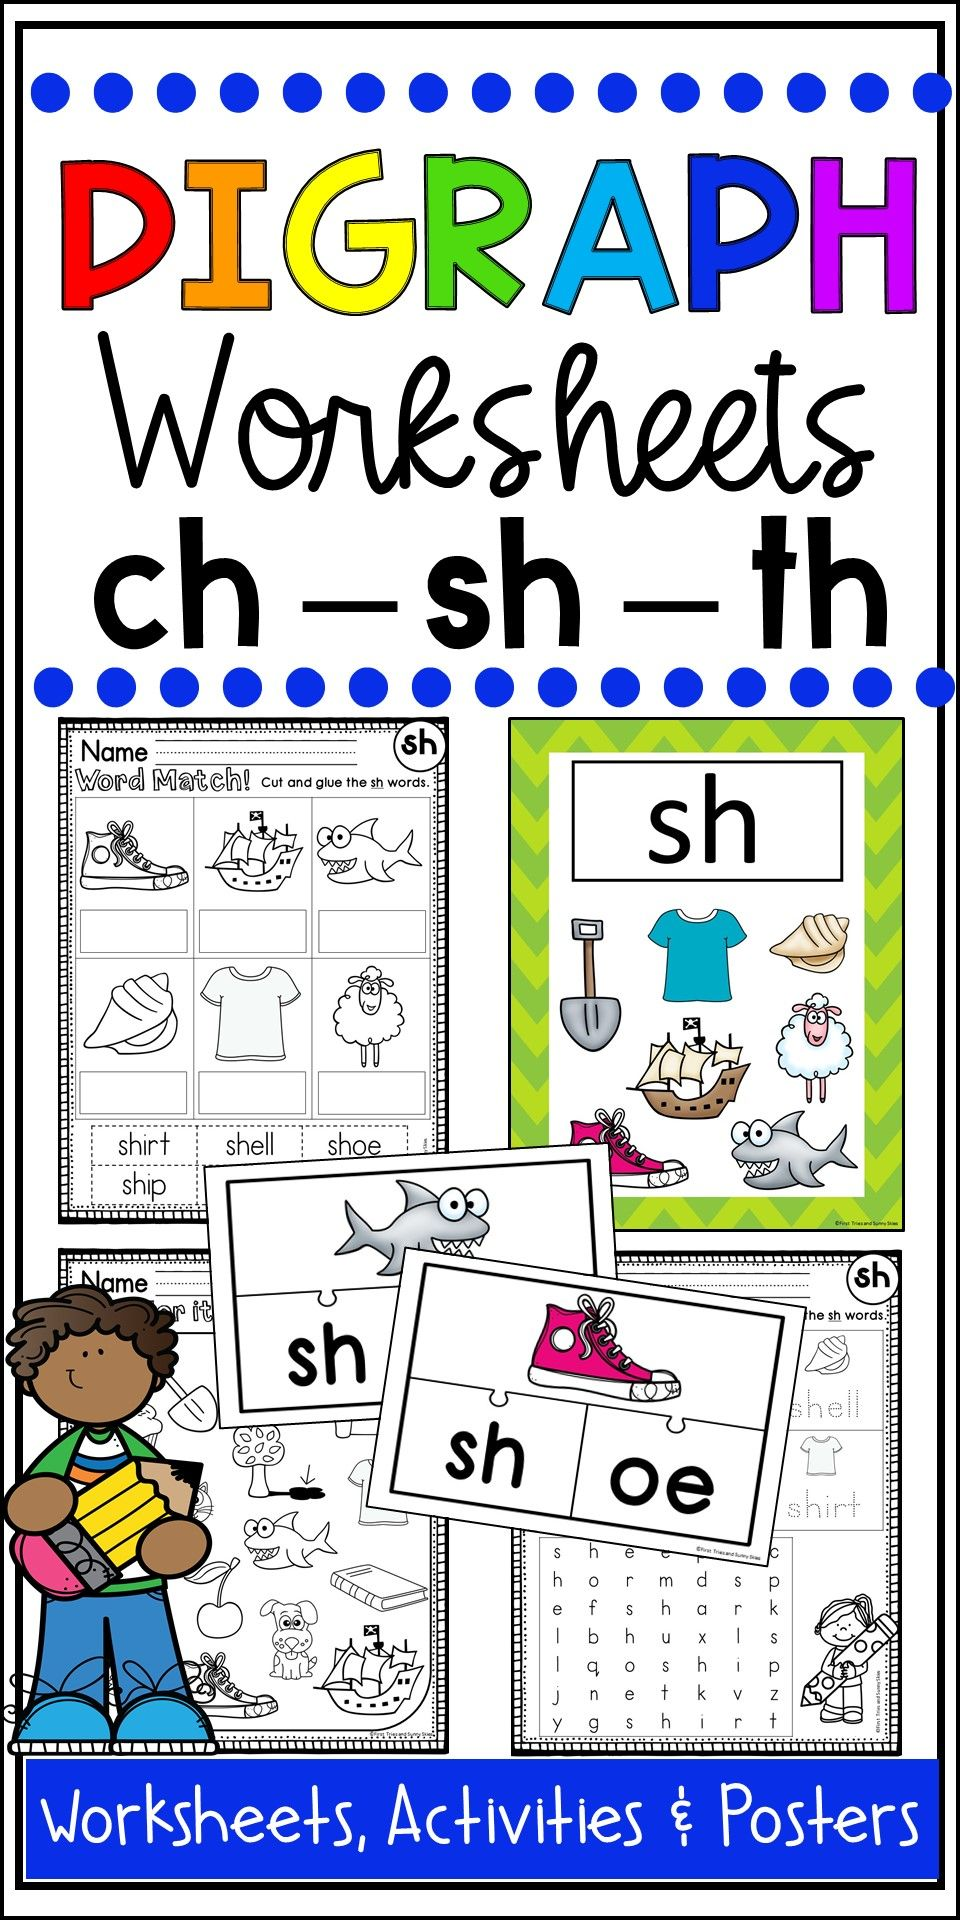 Digraph Activities And Worksheets For Kindergarten And First Grade Digraphs Worksheets Digraphs Activities Kindergarten Activities [ 1920 x 960 Pixel ]